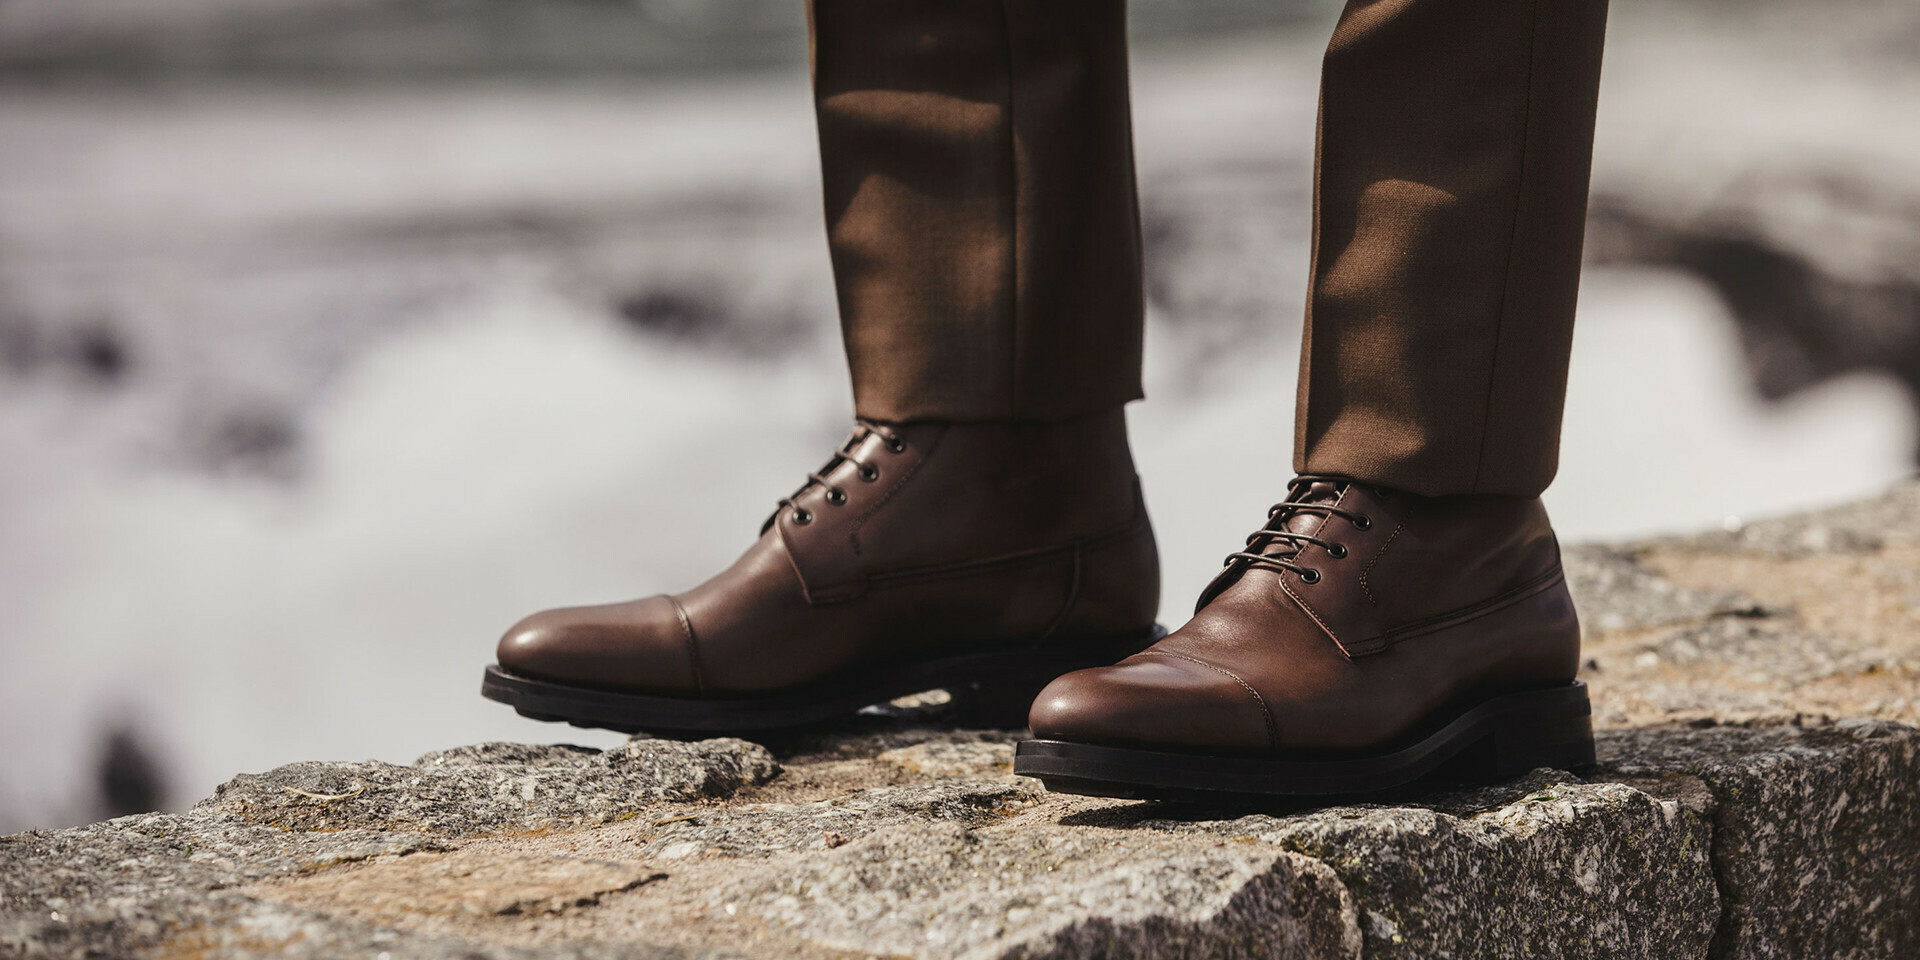 Discover our Ornier Boots